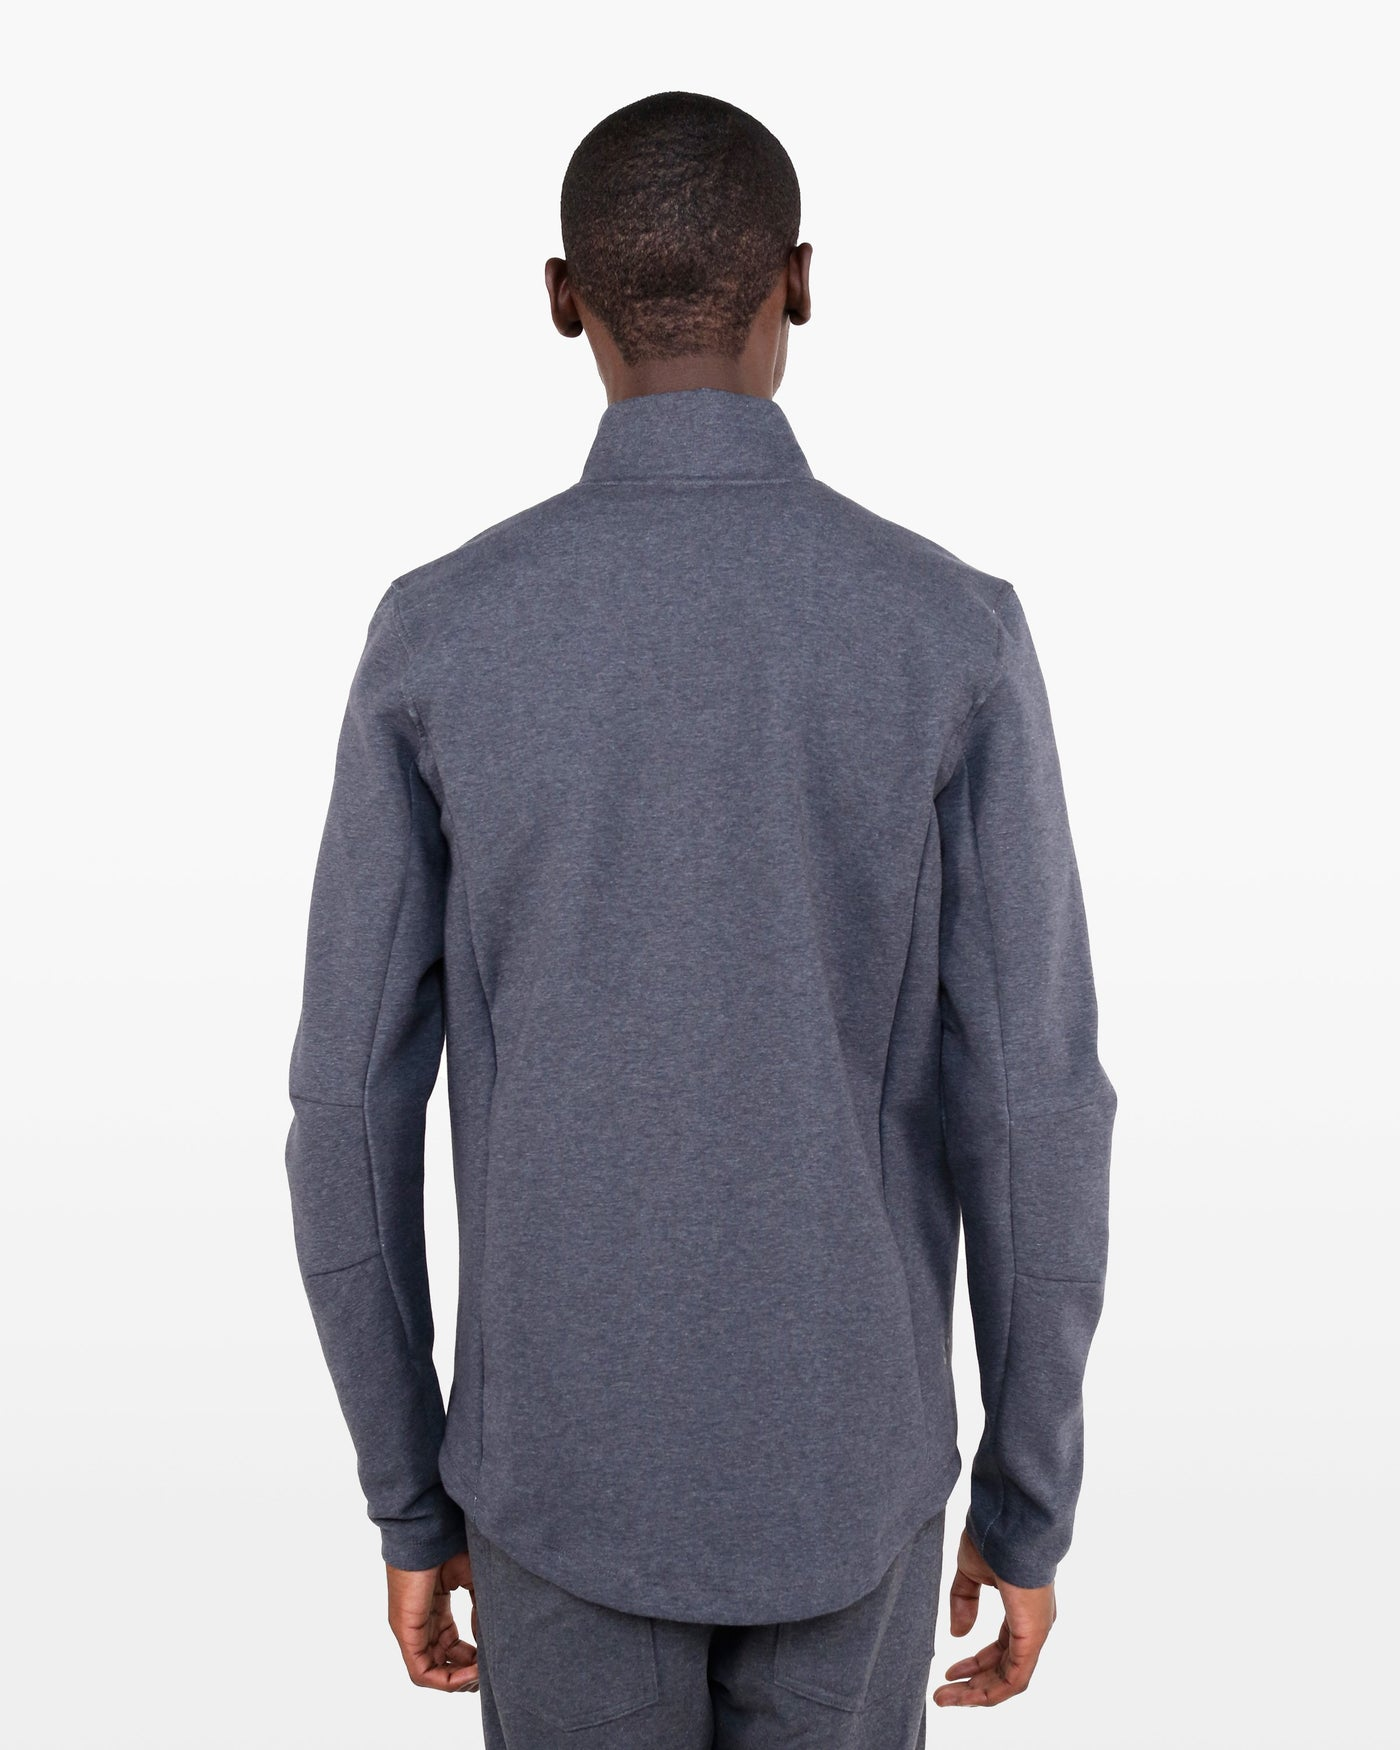 Descartes Jacket SUP in charcoal